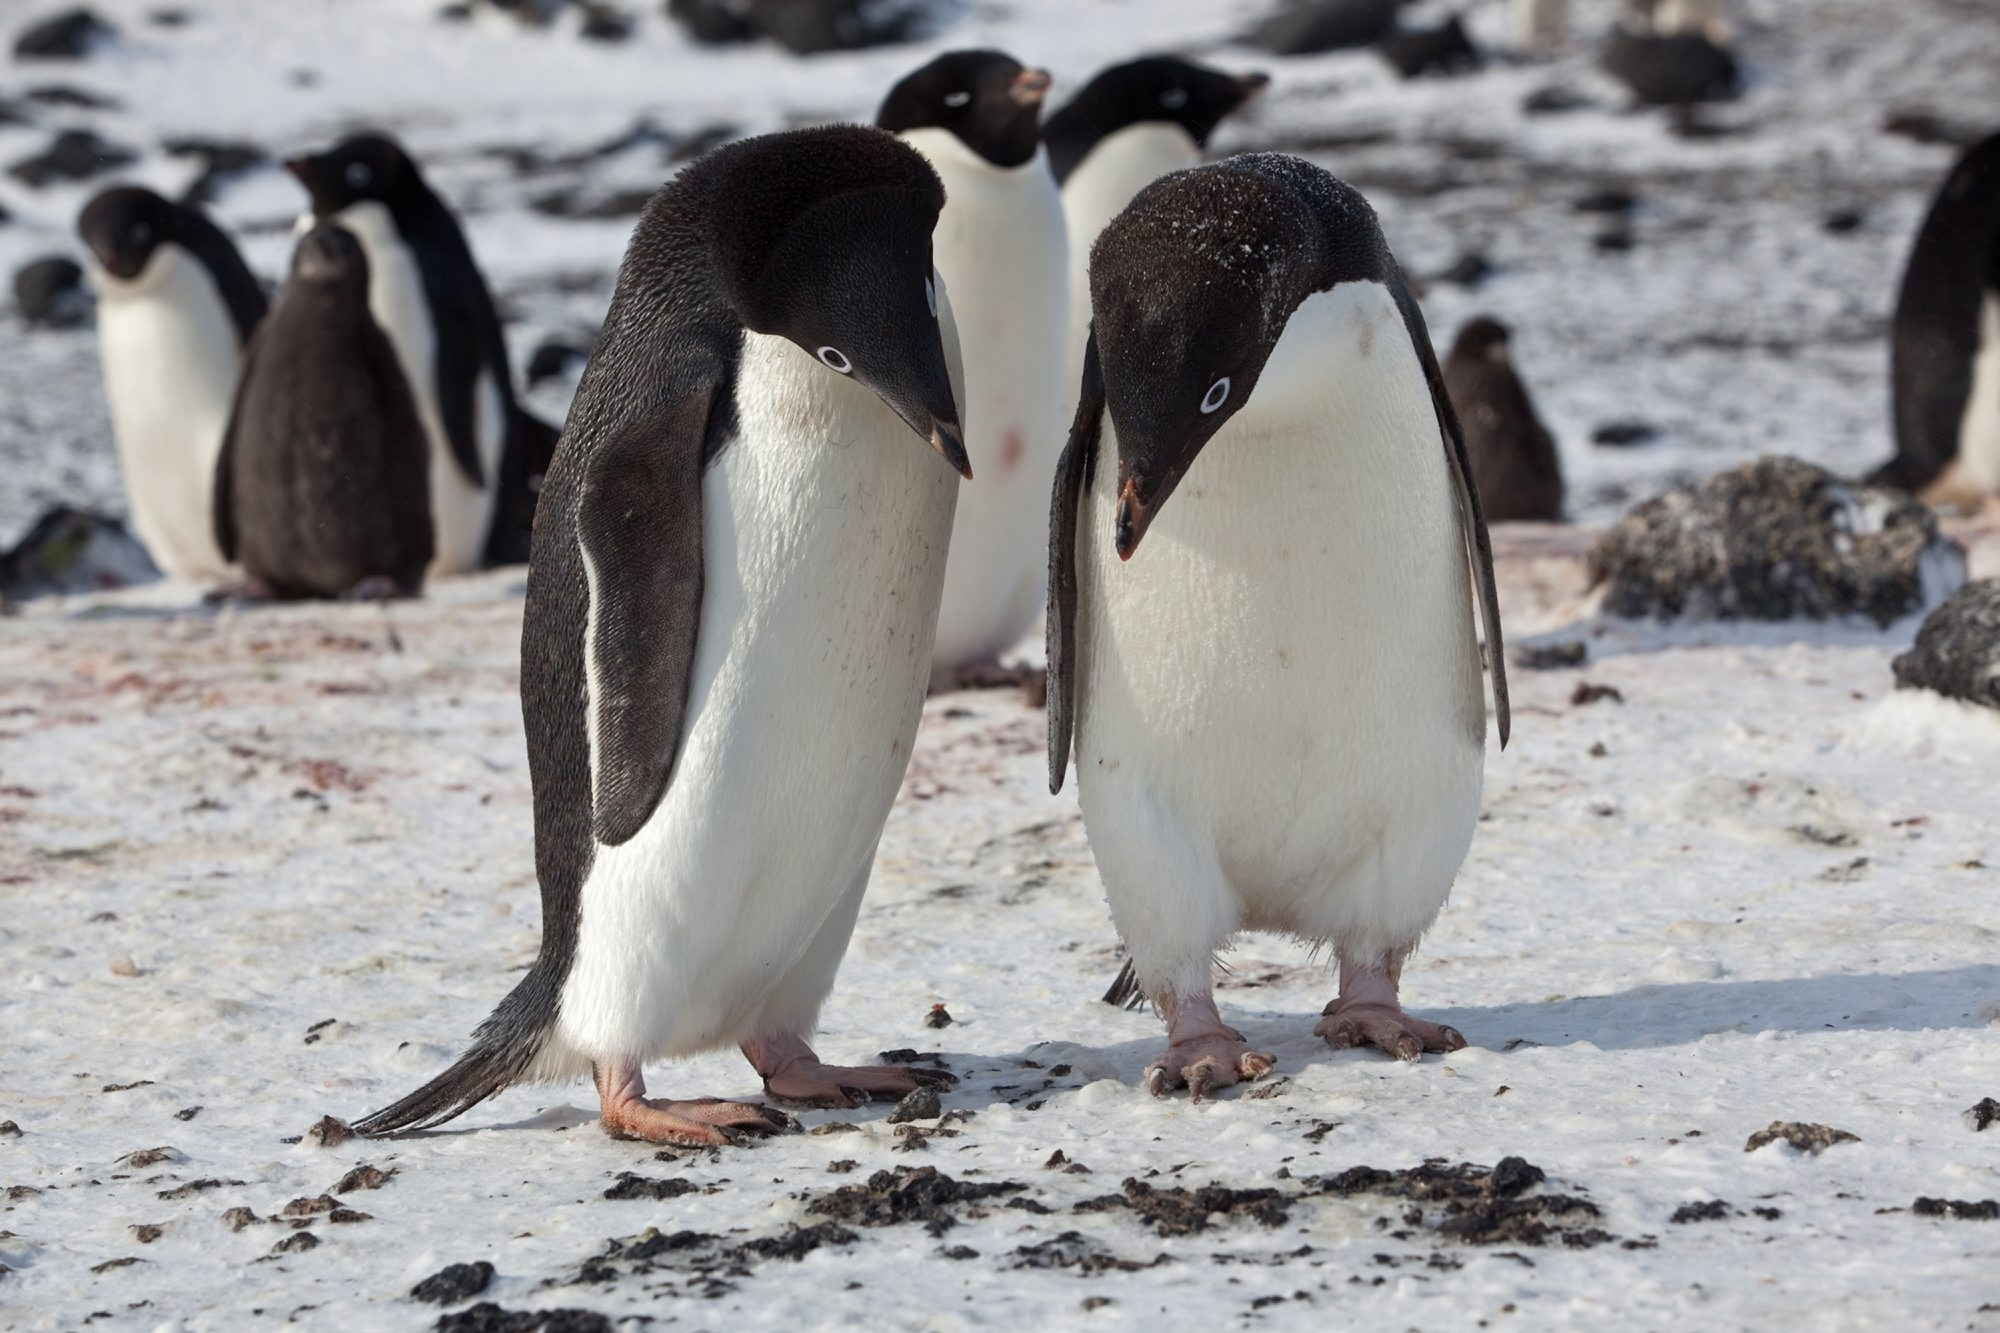 Adelie penguins in the Cape Royds colony, on Ross Island, Antarctica, Jan. 14, 2011. Adelie and emperor penguins rely on the ice of Antarctica to survive, and continued warming of the globe has put these animals at direct risk. (Andy Isaacson/The New York Times)